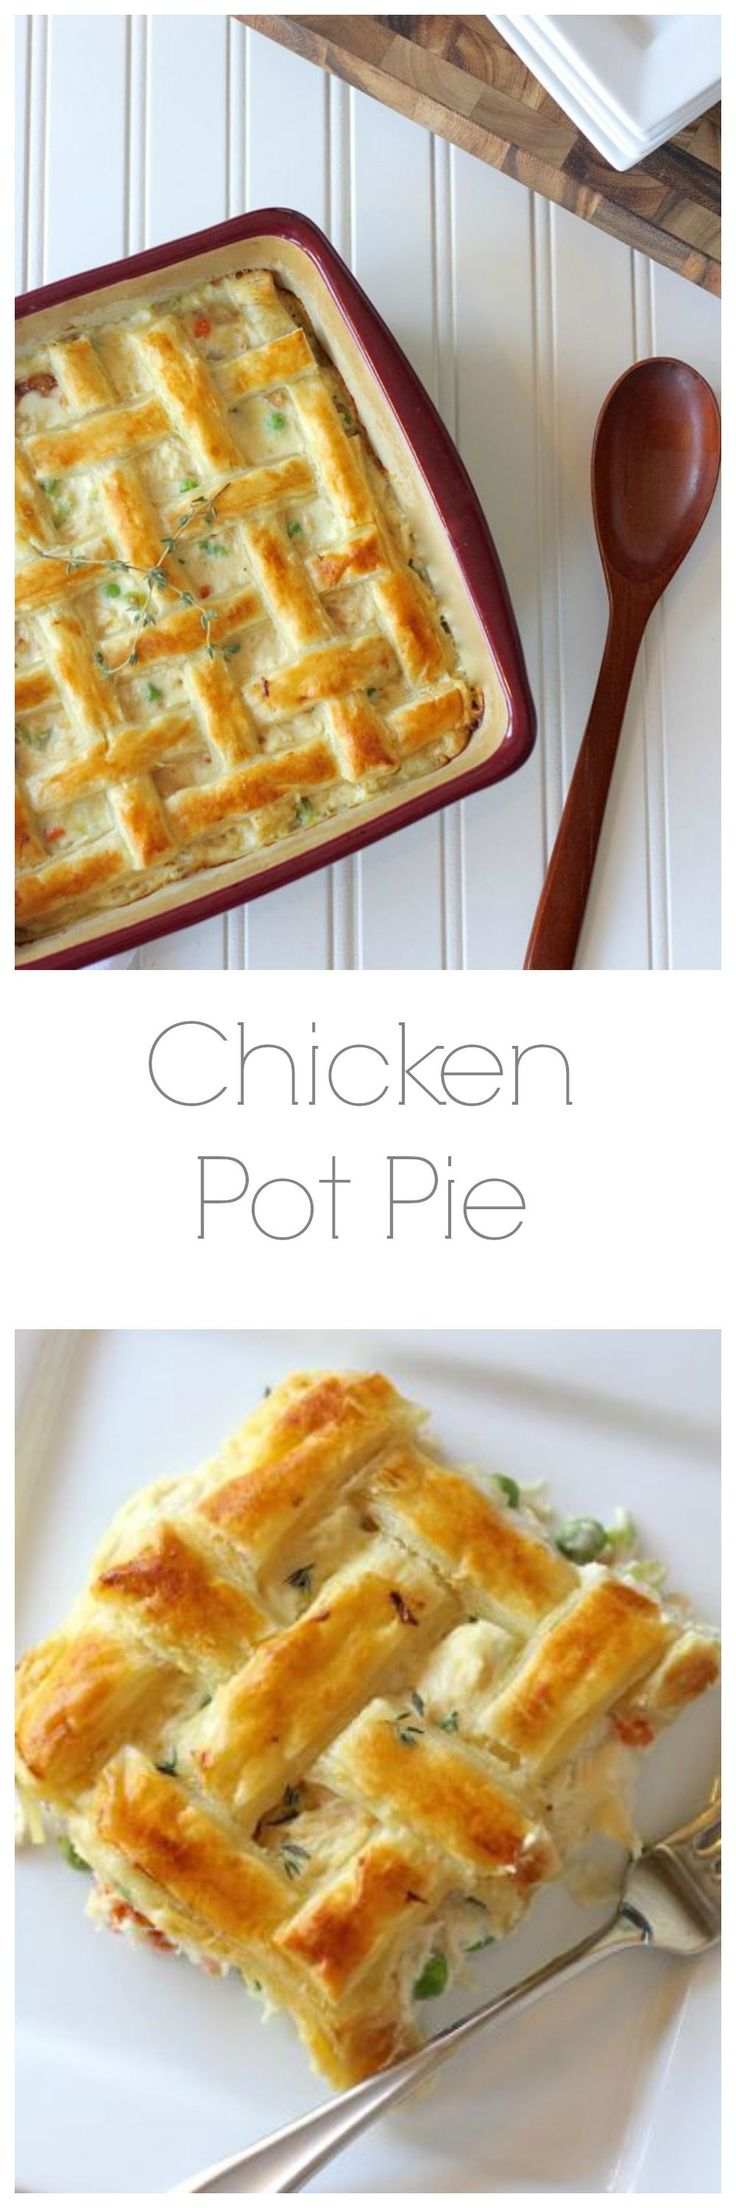 An easy twist on the classic chicken pot pie - you're going to LOVE this recipe!